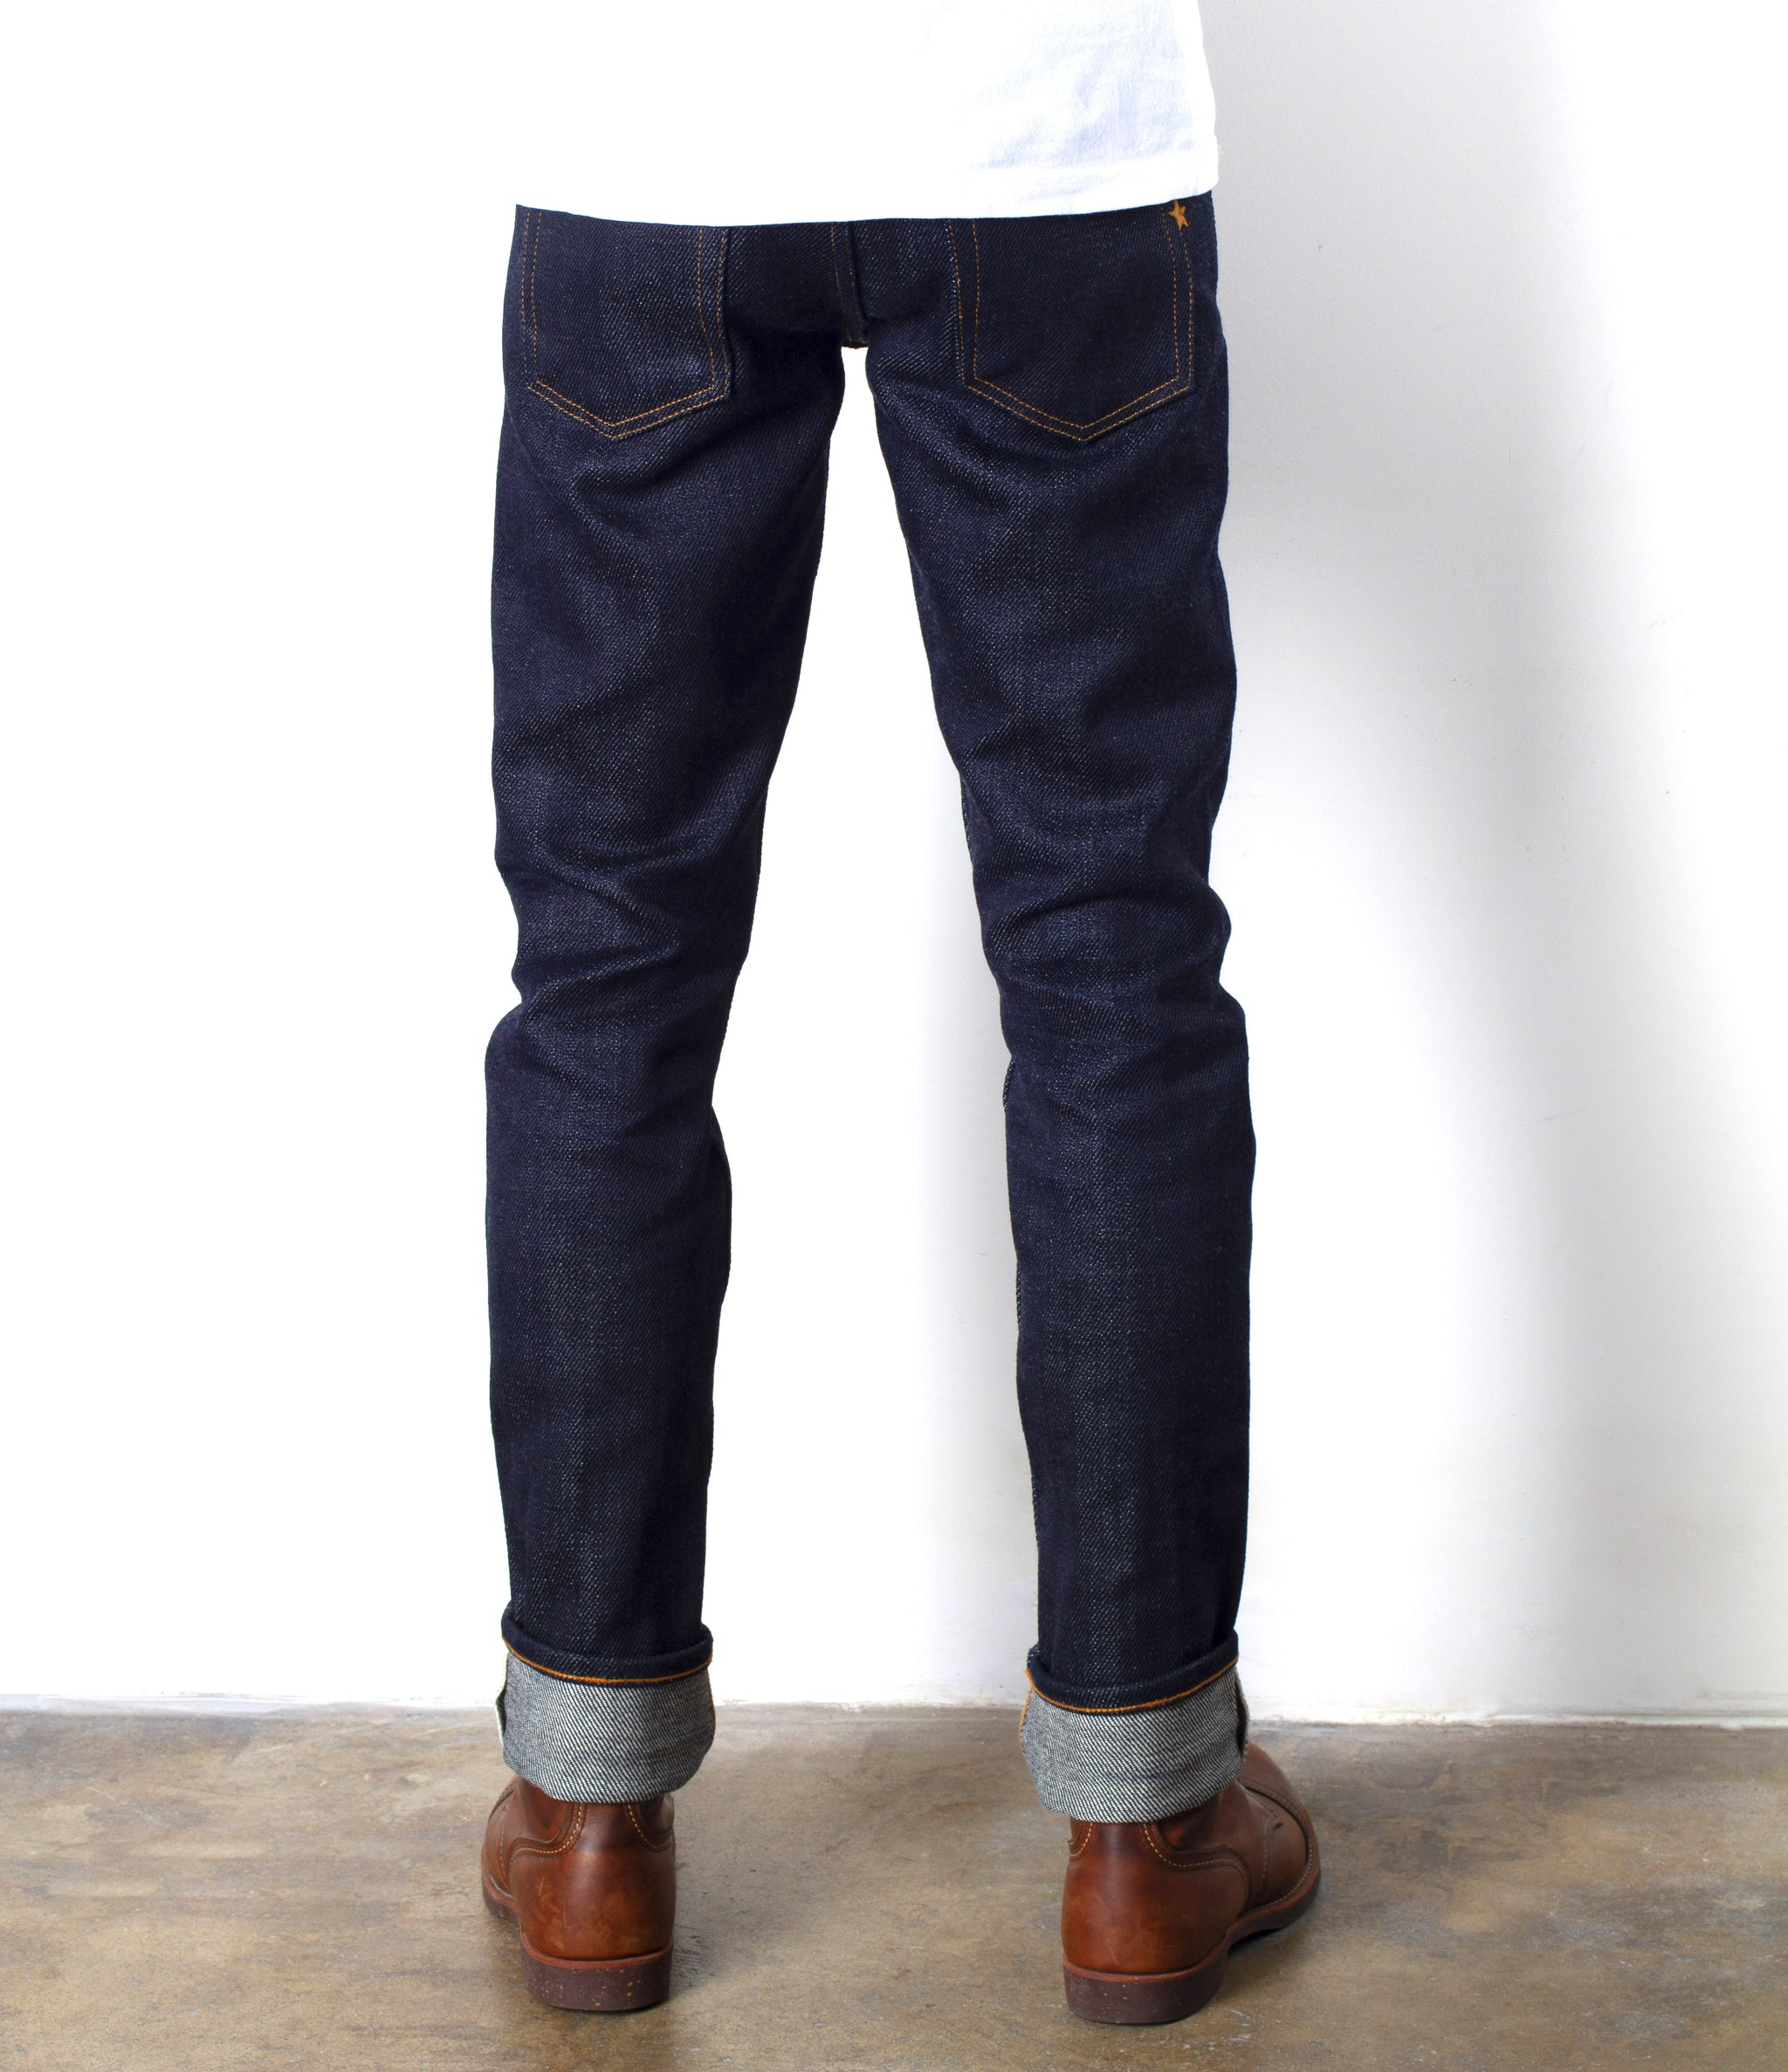 The Slim Straight 21.5oz Heavyweight Selvage Pre Order